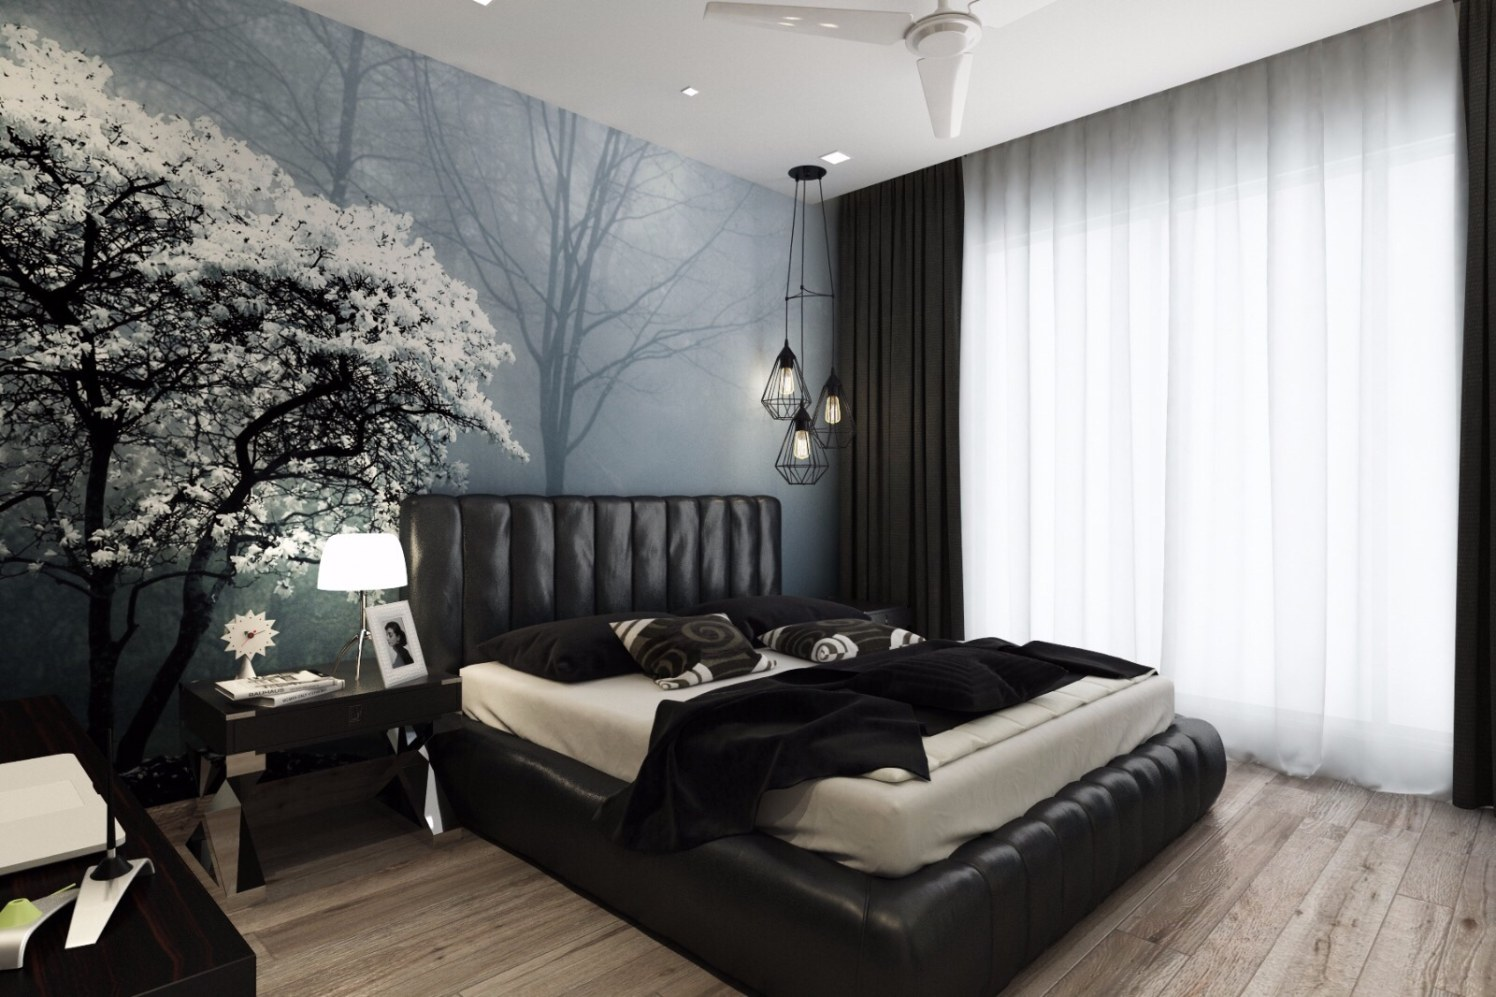 Bedroom with abstract wall design by Jeenal Mehta Bedroom Contemporary | Interior Design Photos & Ideas